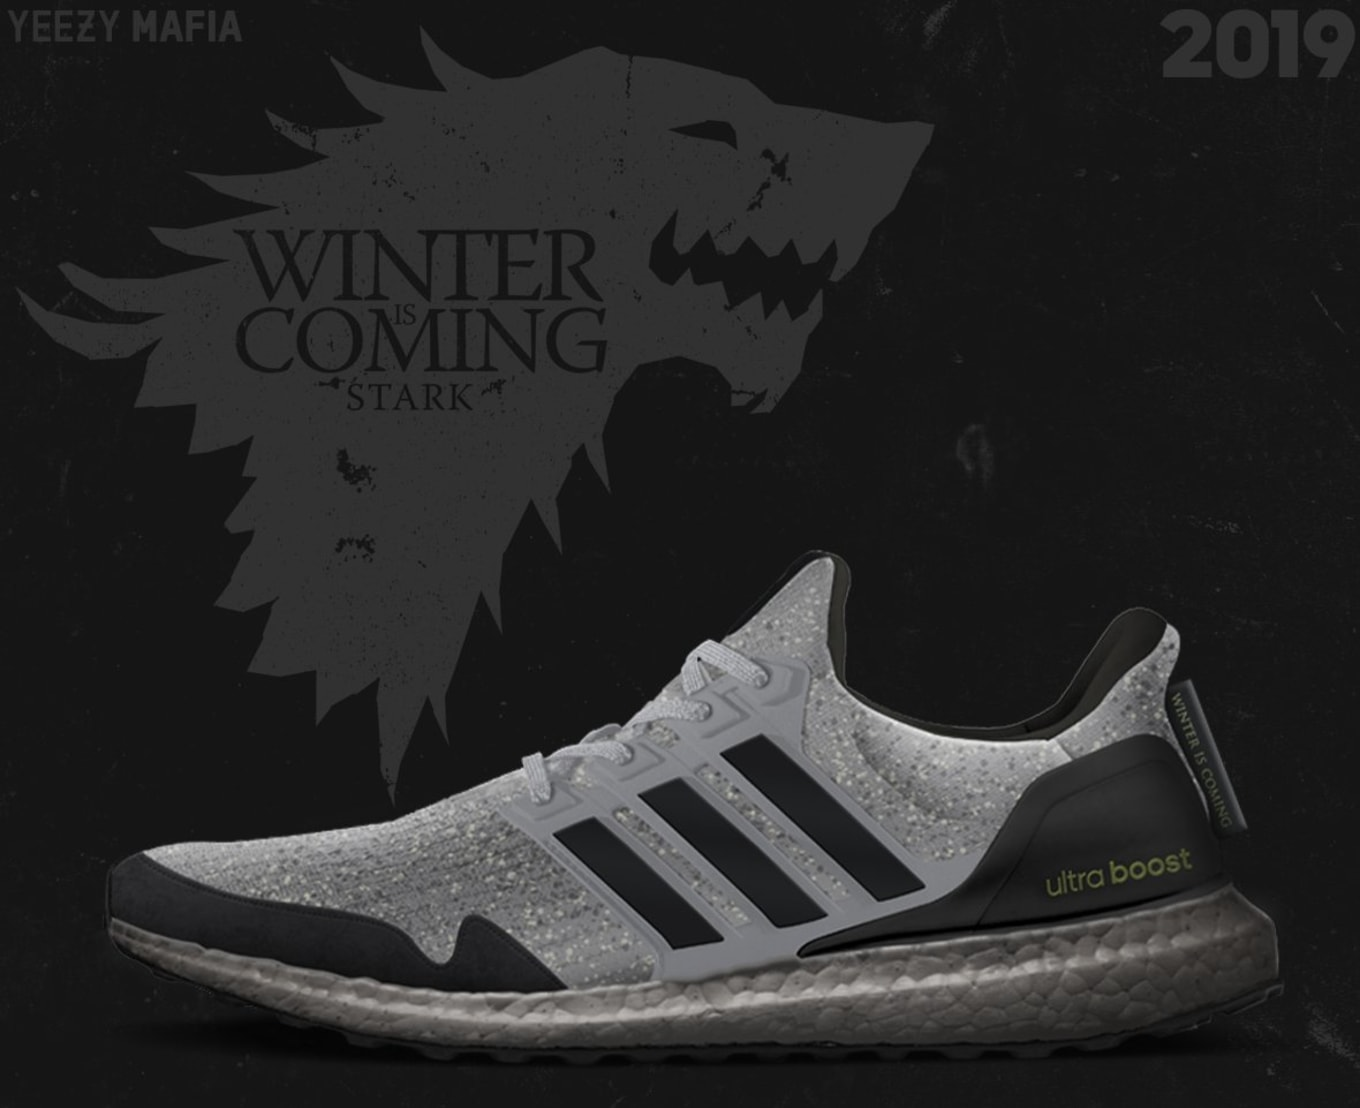 abef931a9 Game of Thrones x Adidas Ultra Boost Sneaker Collaboration 2019 ...